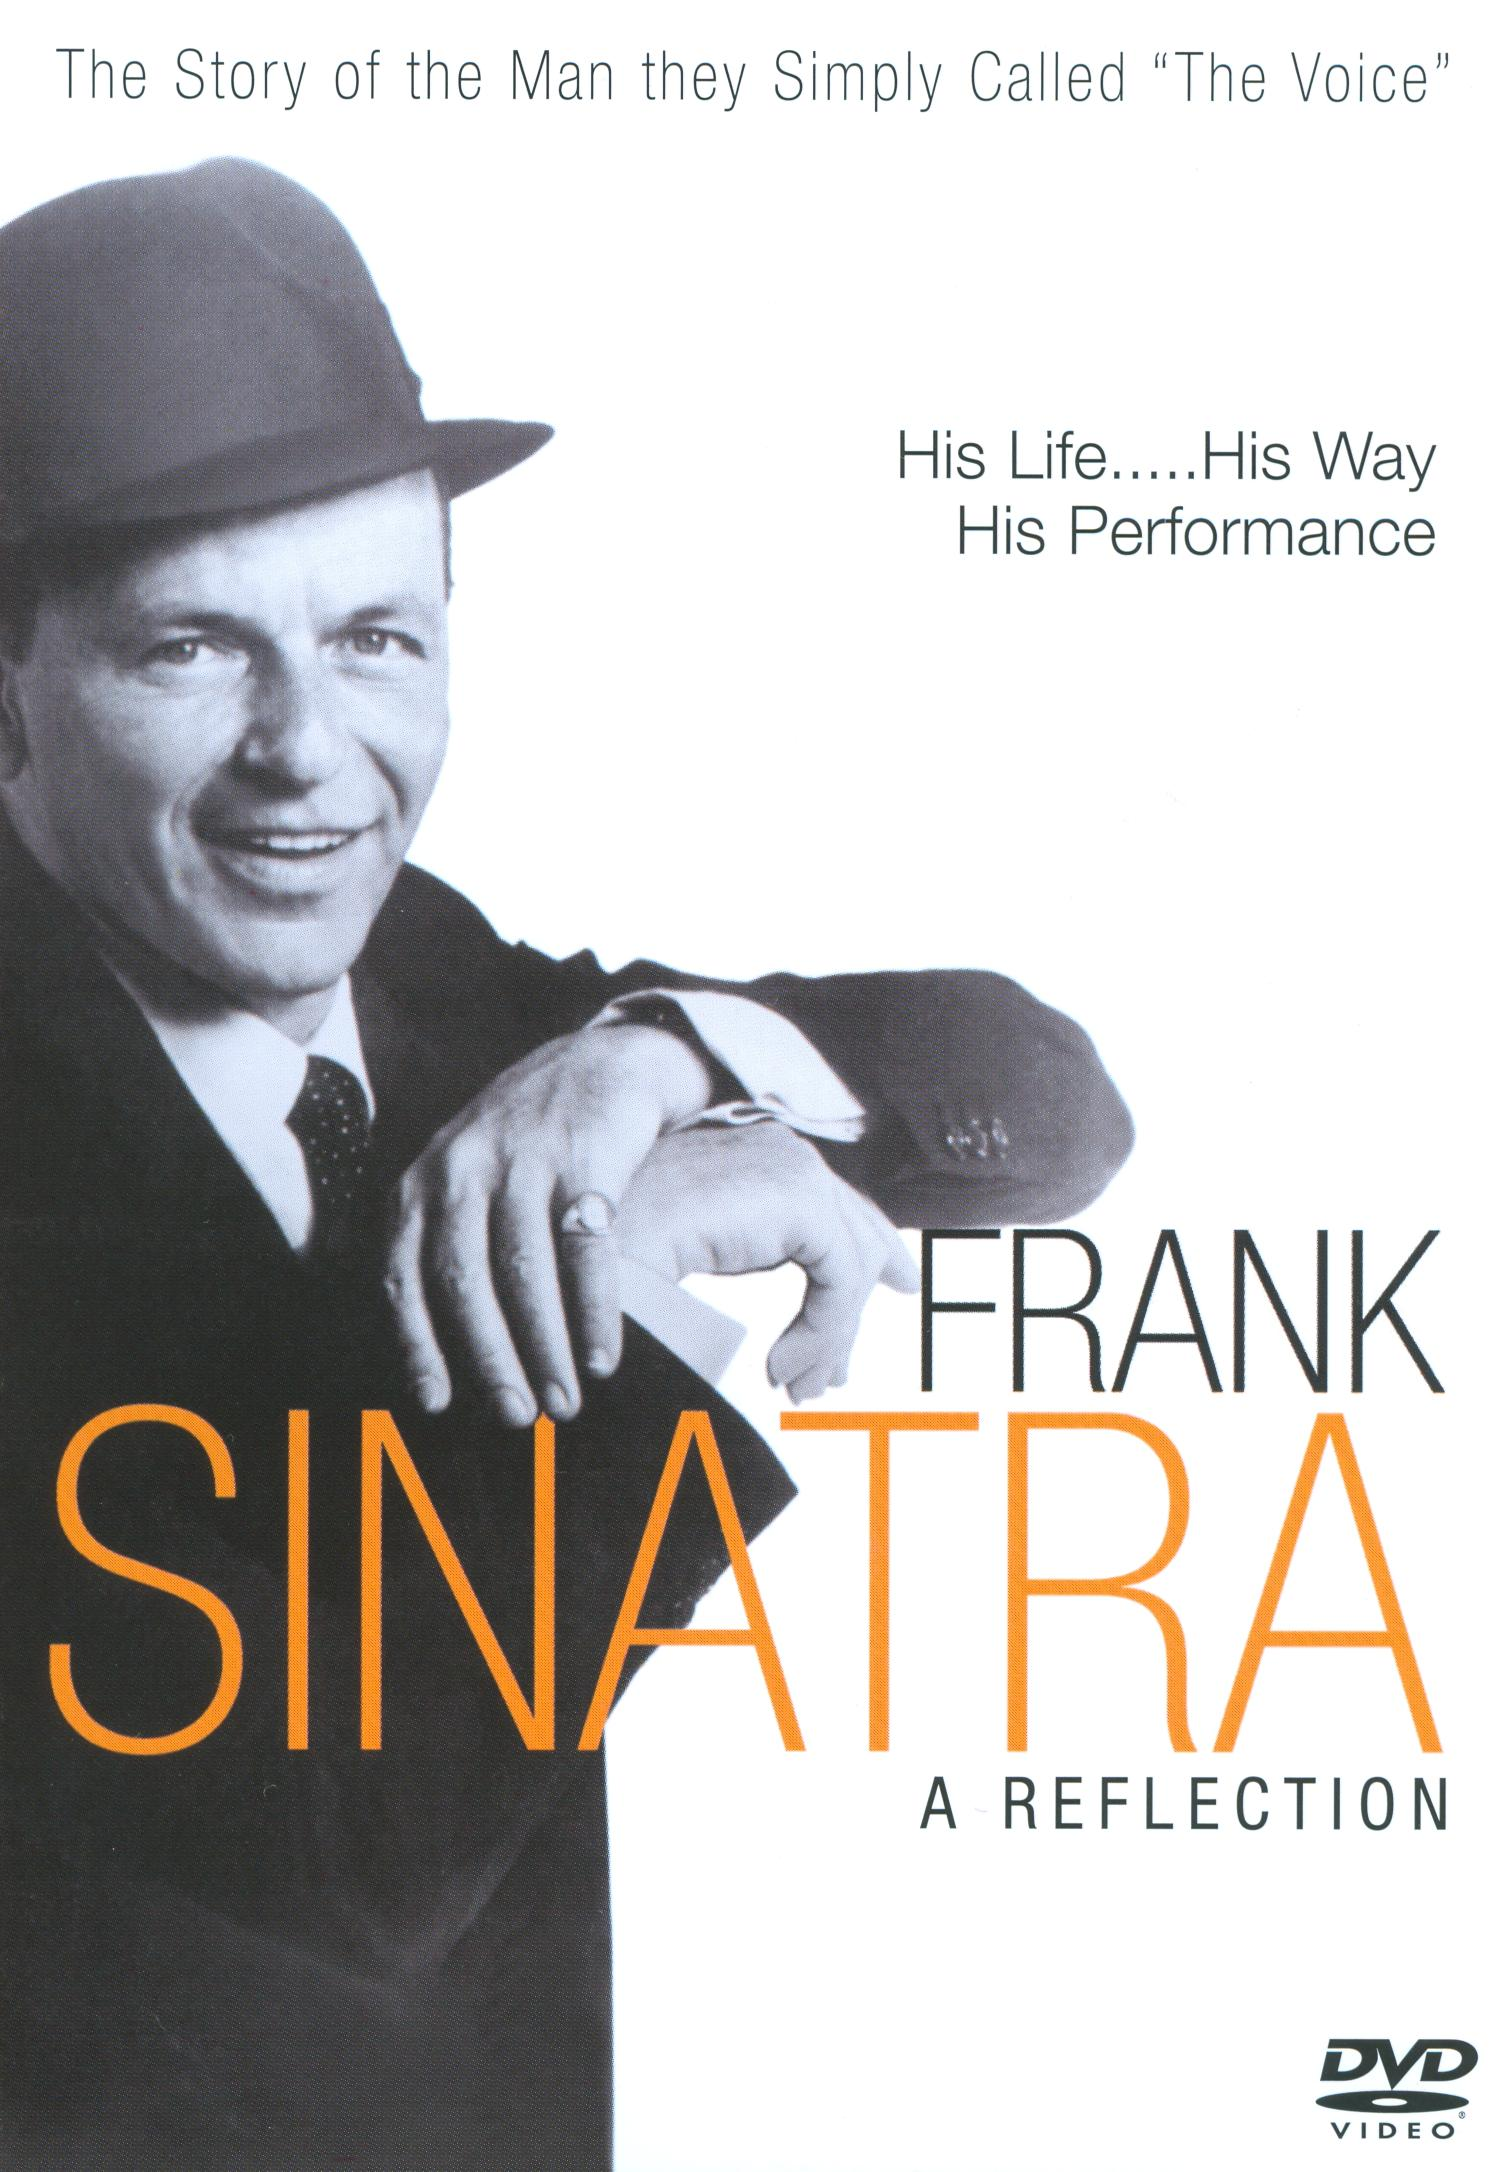 the life and career of frank sinatra Dramatizes the ups and downs of frank sinatra's career and personal life full of hits and memorable moments, this show is sure to delight.